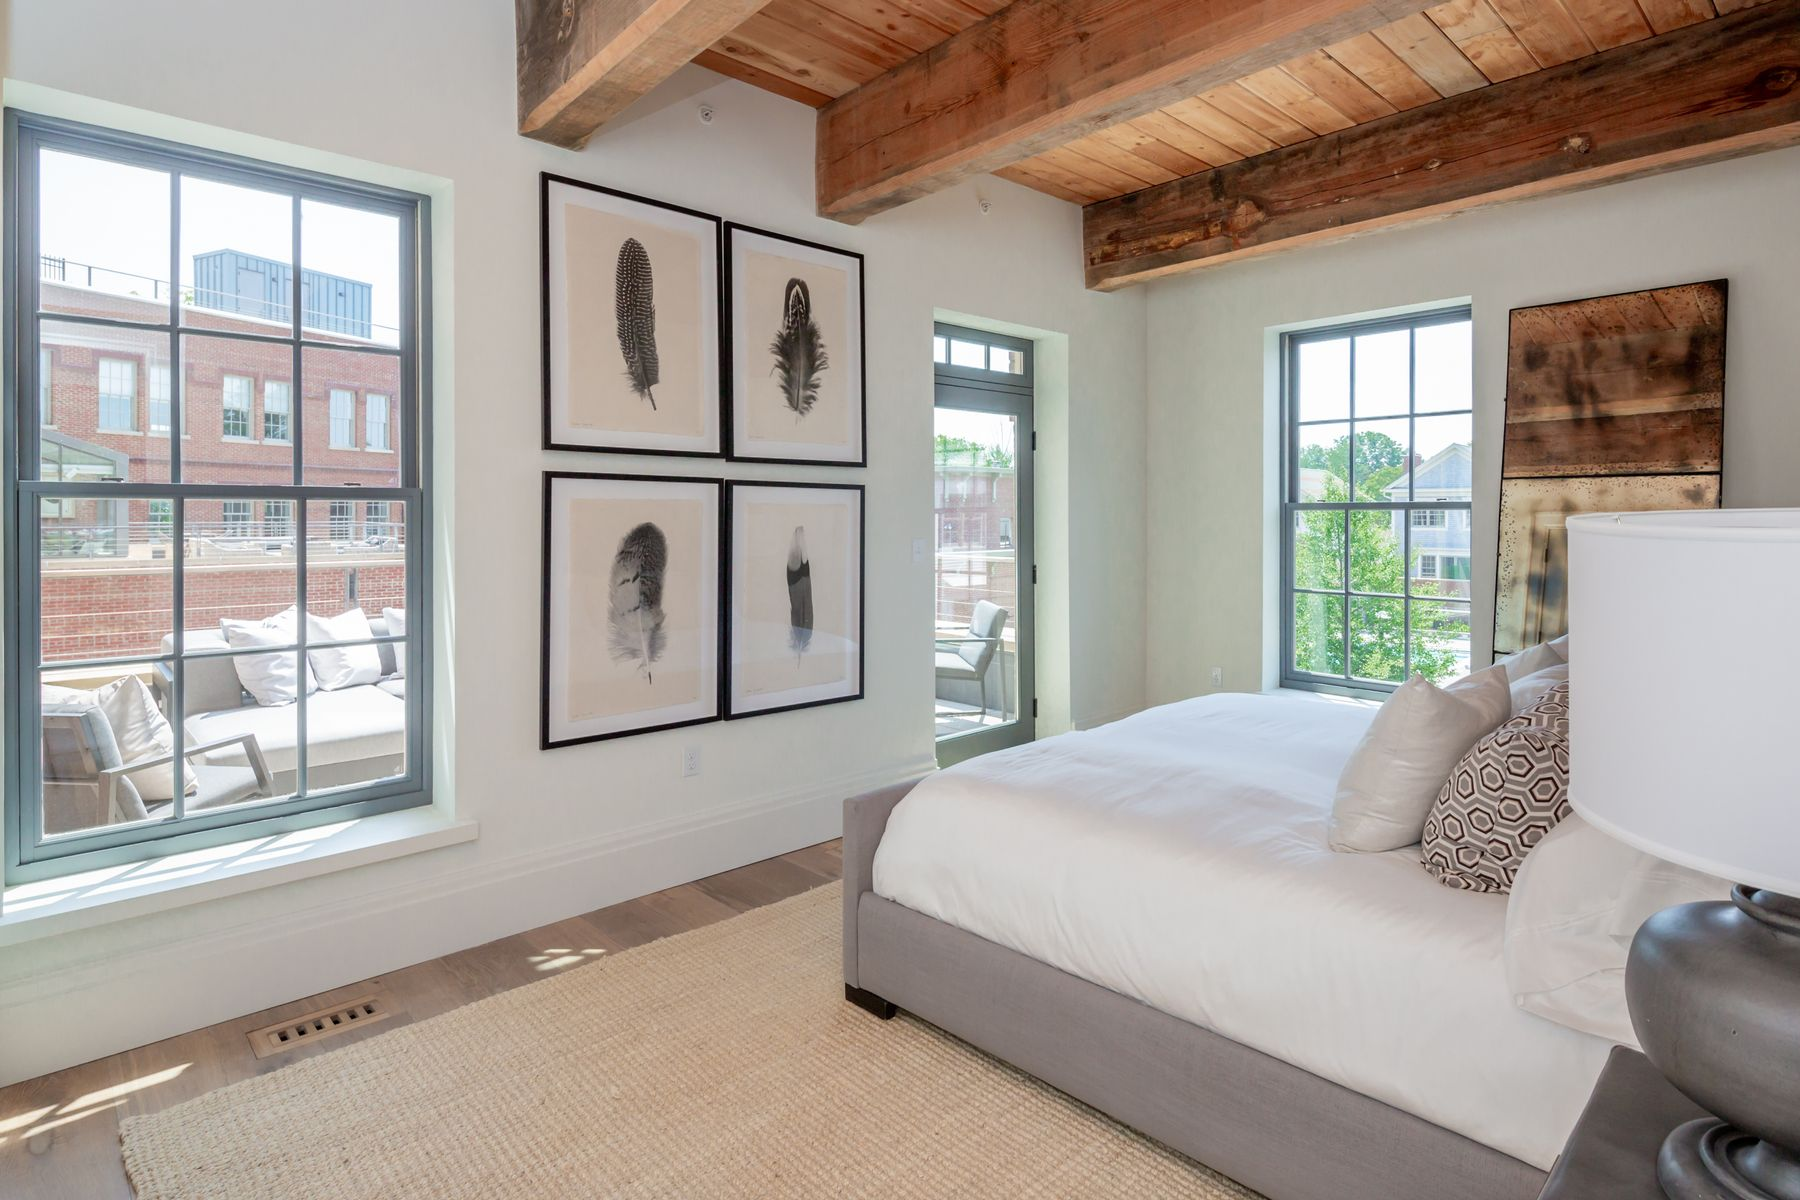 Additional photo for property listing at Sag Harbor Penthouse 418 with Views 15 Church Street Ph418 Watchcase - Penthouse Sag Harbor, New York 11963 United States